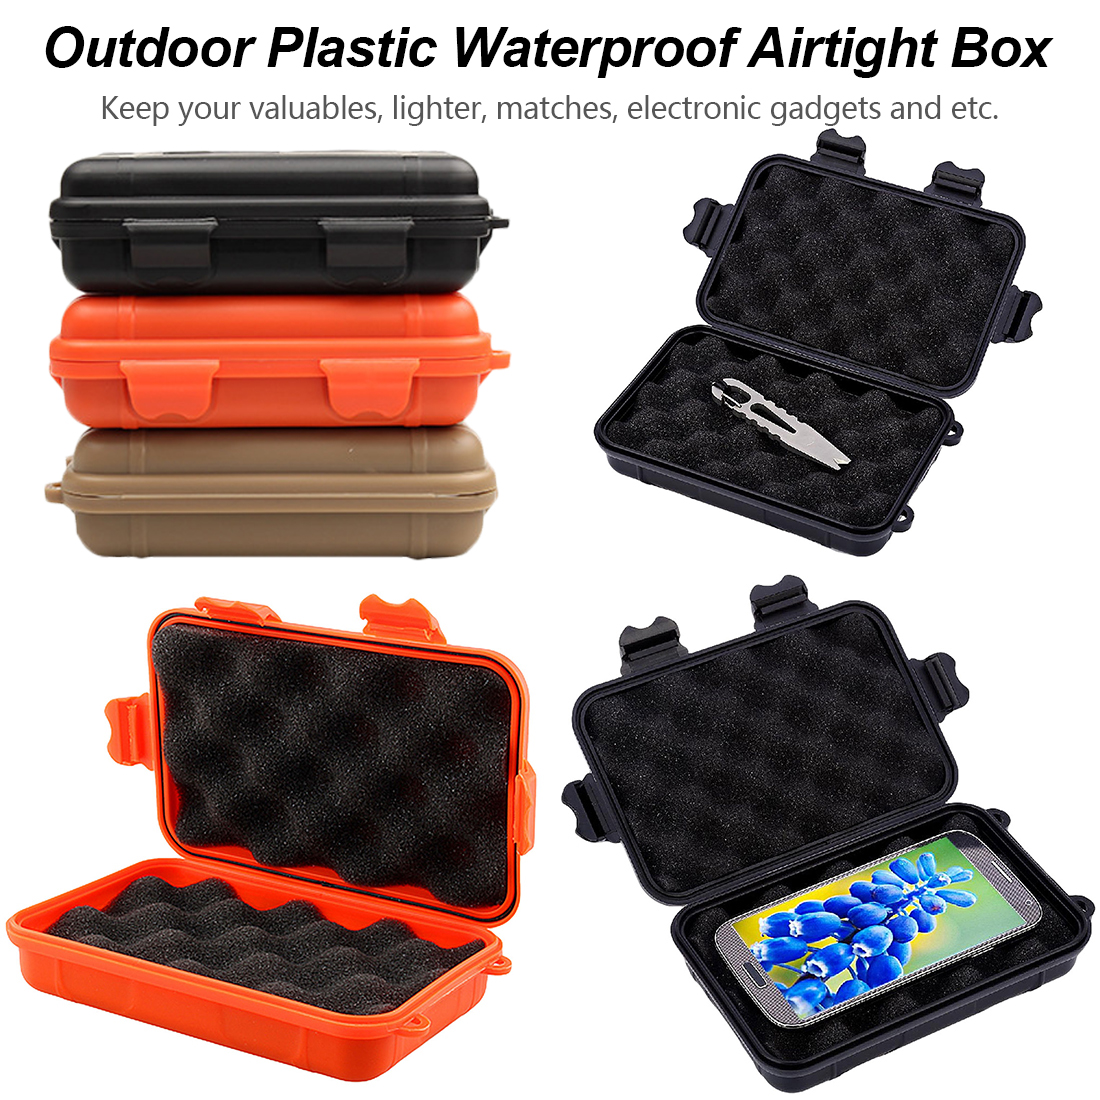 Shockproof Waterproof Camping Travel Container Carry Storage Box EDC Containers Outdoor Airtight Survival Storage Case